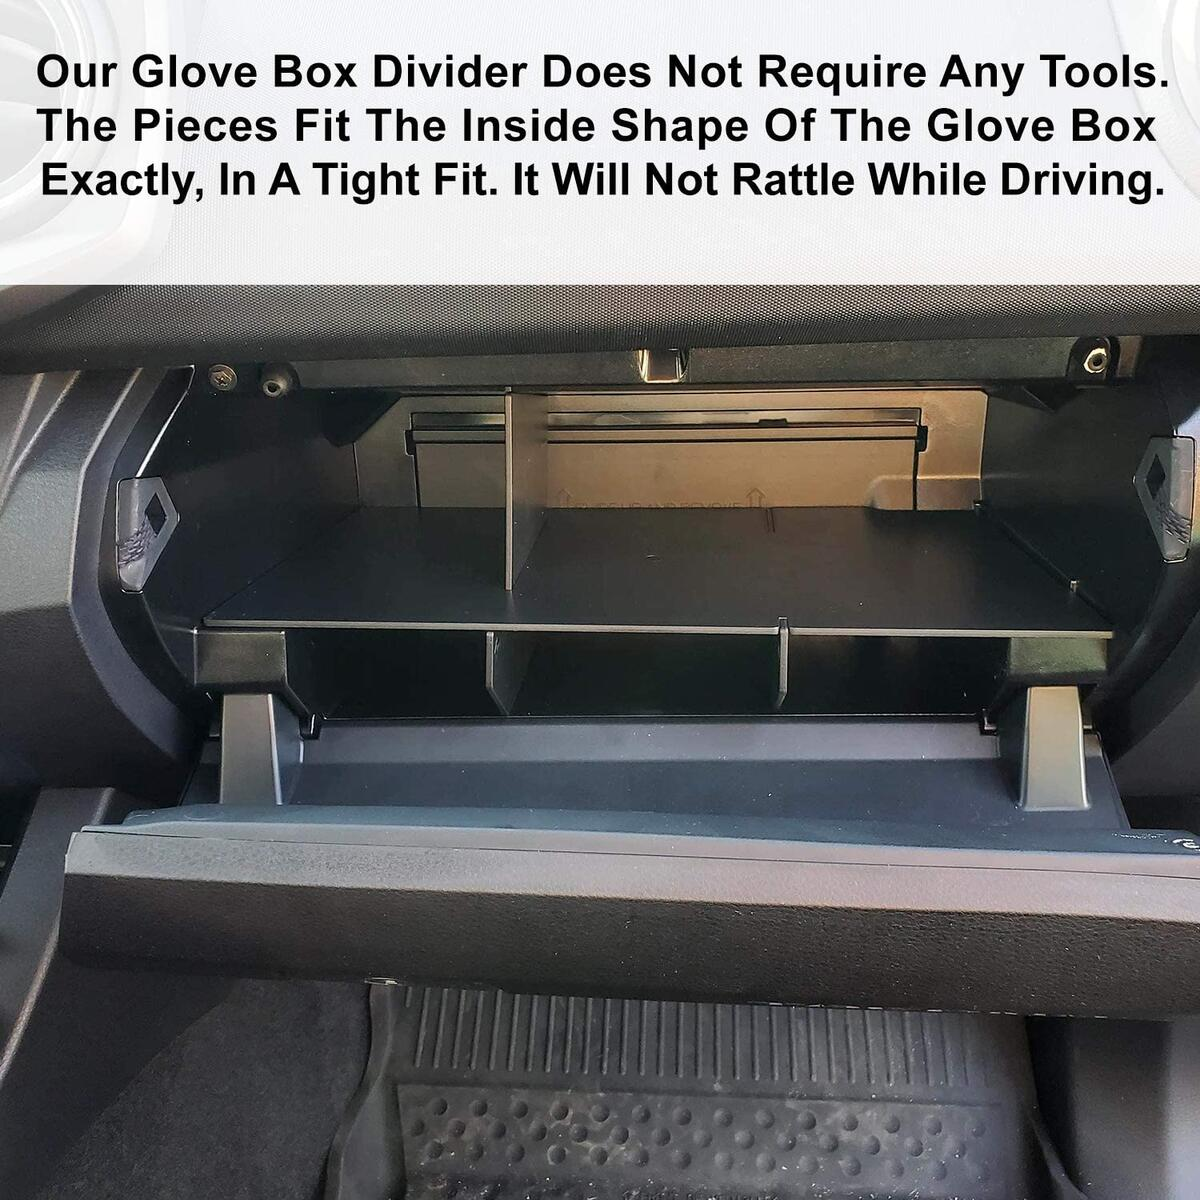 Glove Box Organizer Divider Compatible with Toyota Tacoma, Glove Compartment Interlocking Insert Dividers, Car Accessories for Years 2016-2017-2018-2019-2020 for All Models, Black